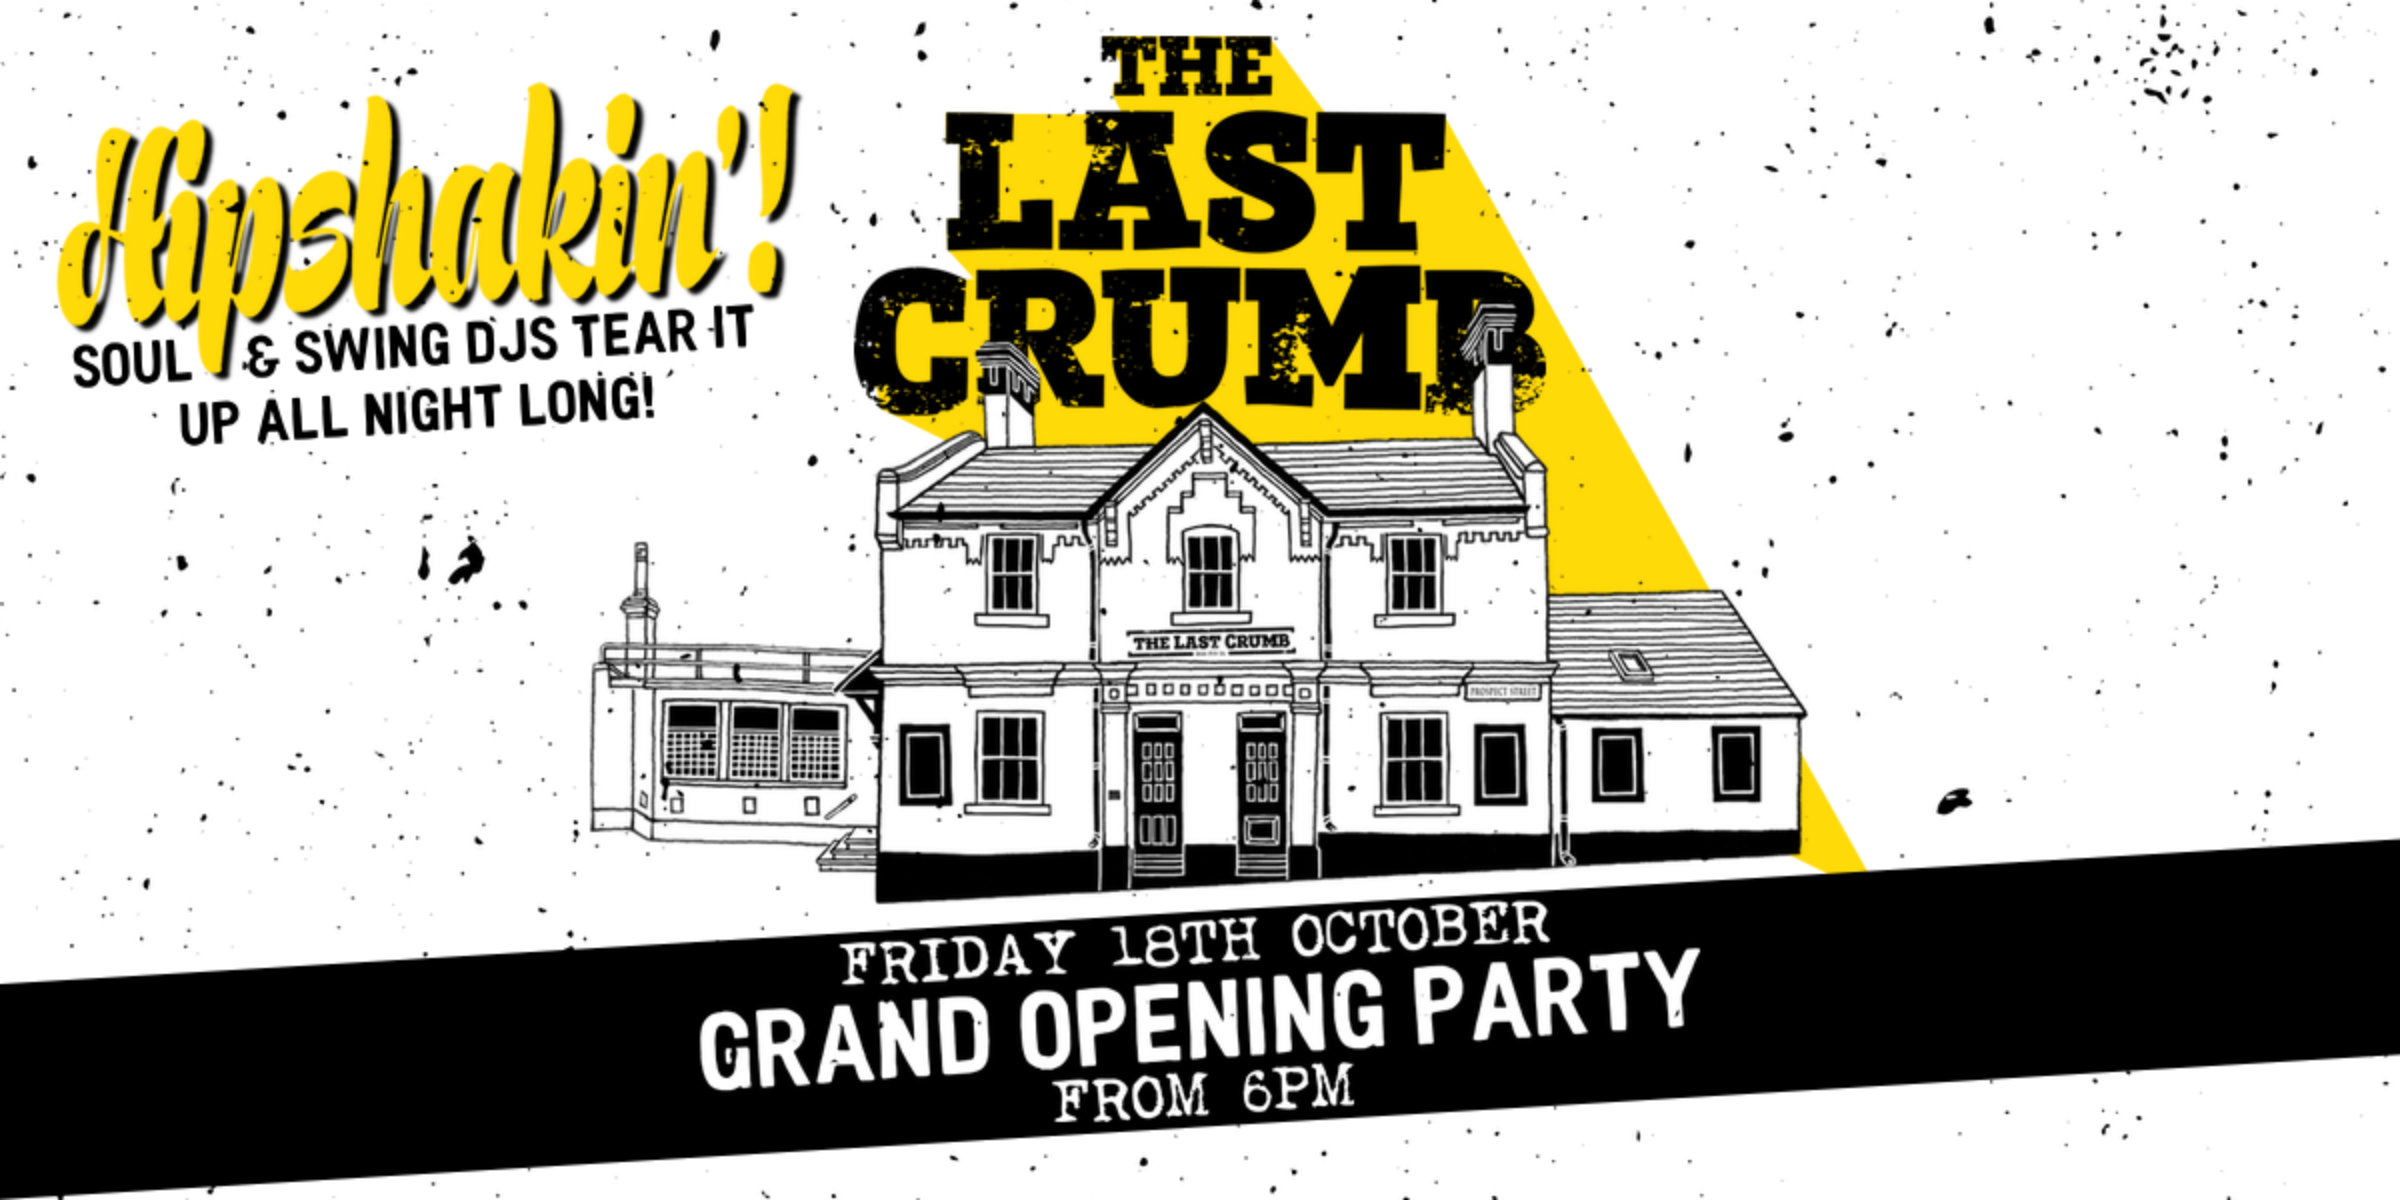 The Last Crumb Grand Opening Party Friday 18th October 6pm